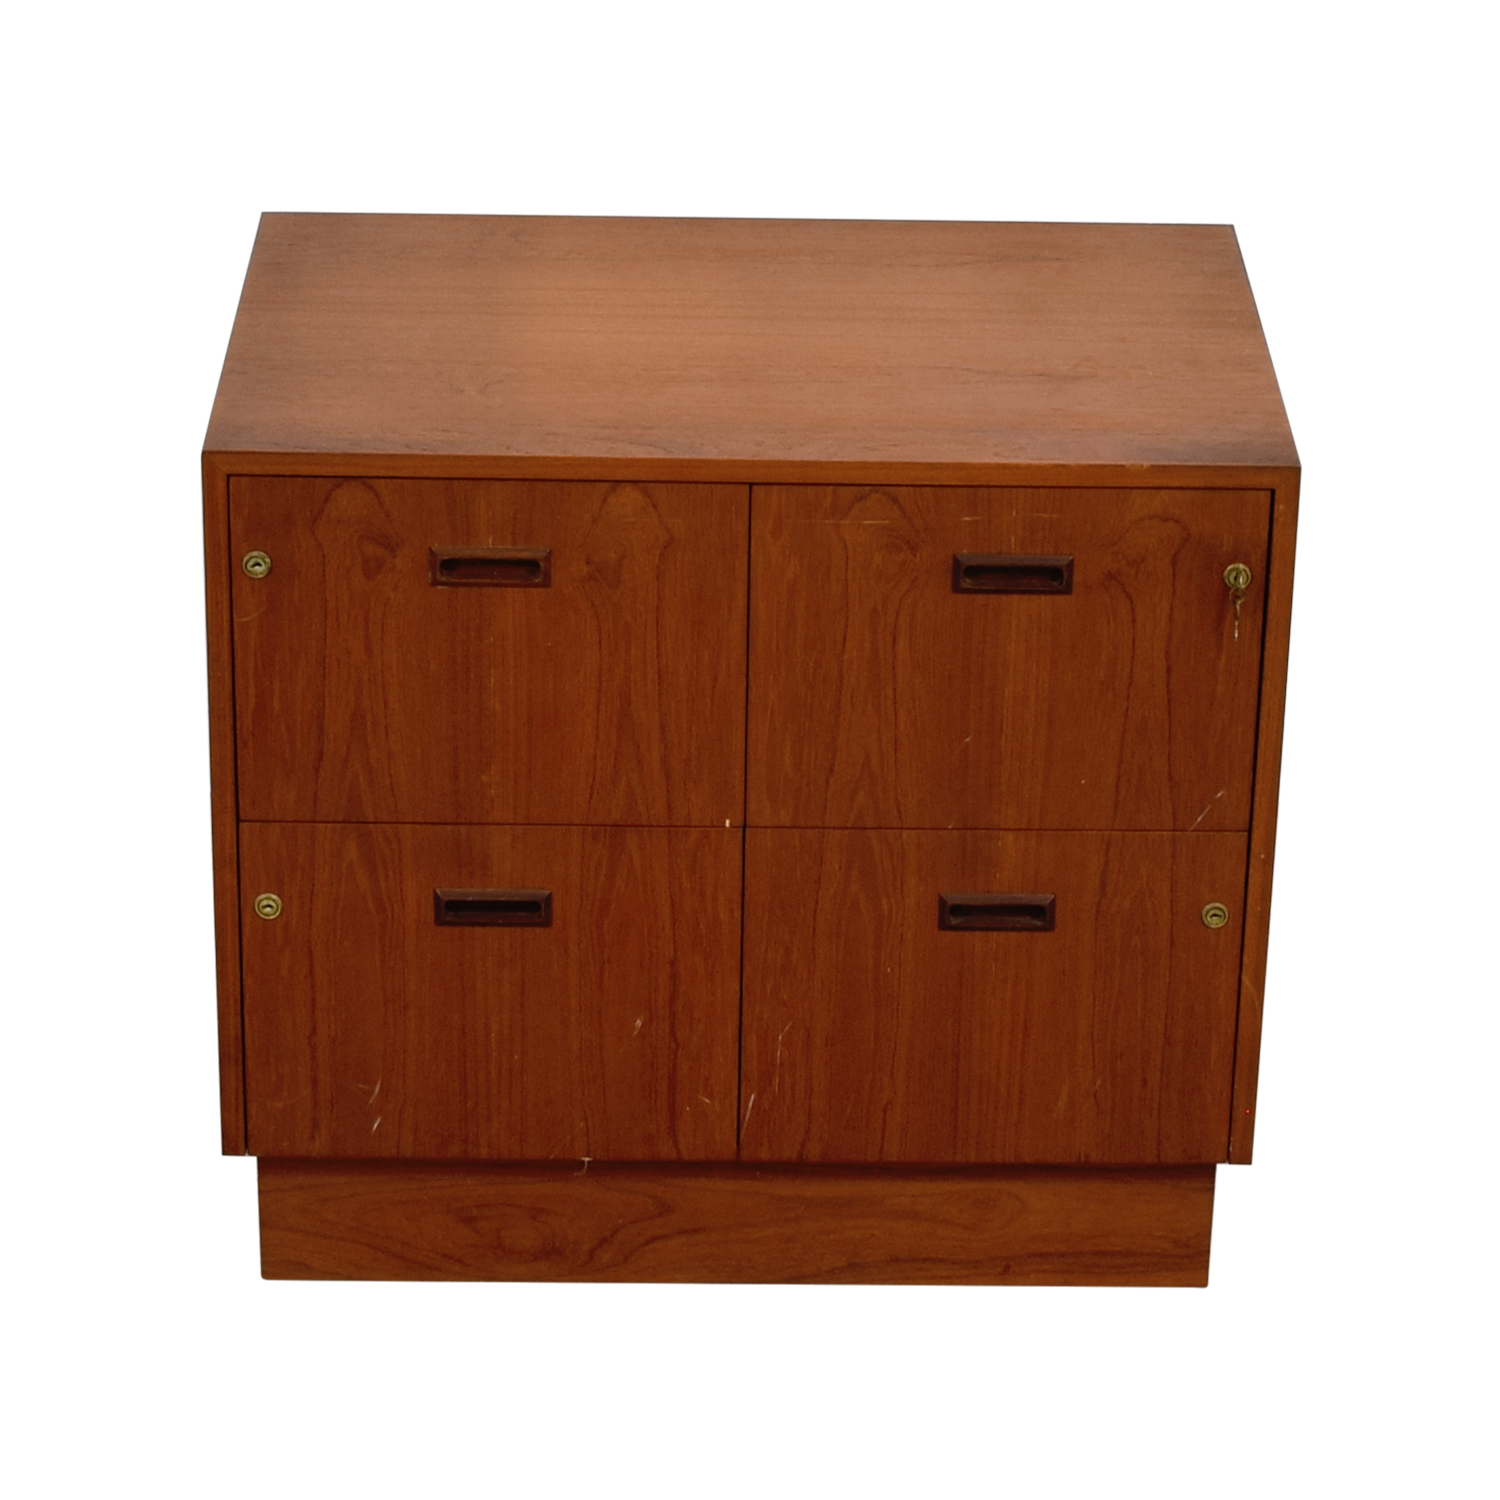 Three-Drawer Four Space Wood File Cabinet dimensions